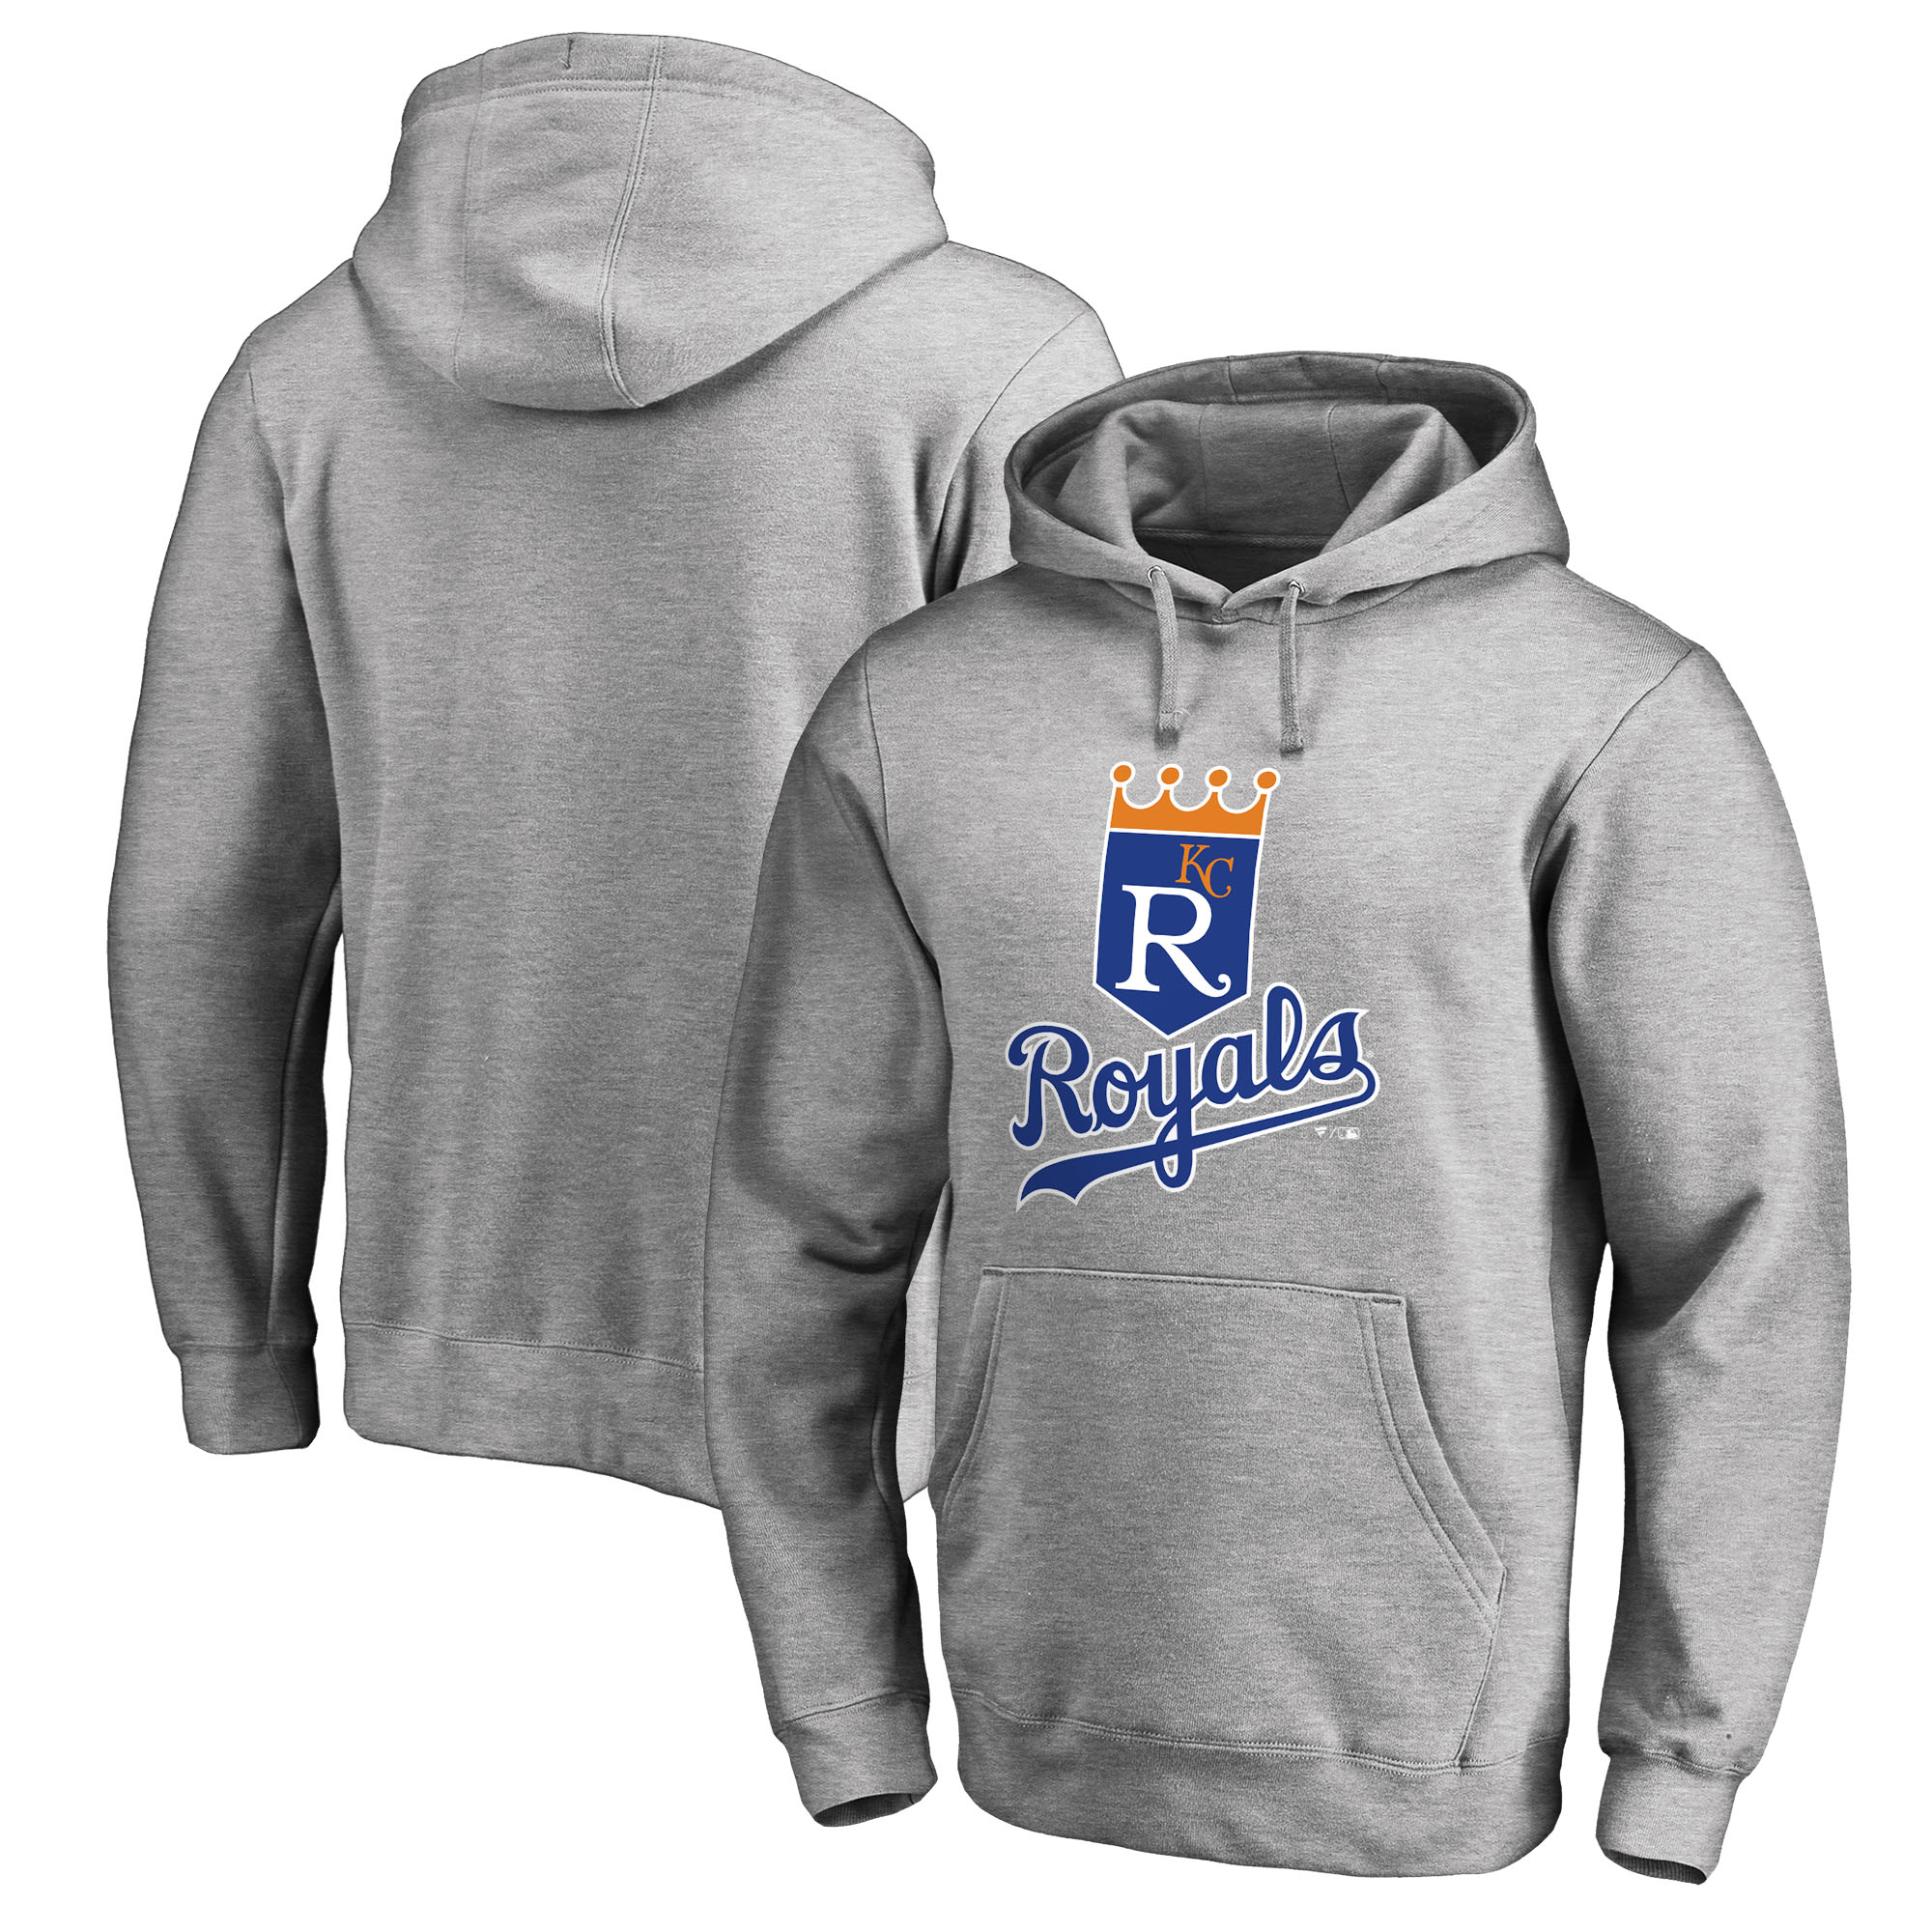 Kansas City Royals Fanatics Branded Cooperstown Collection Huntington Big & Tall Pullover Hoodie - Heathered Gray